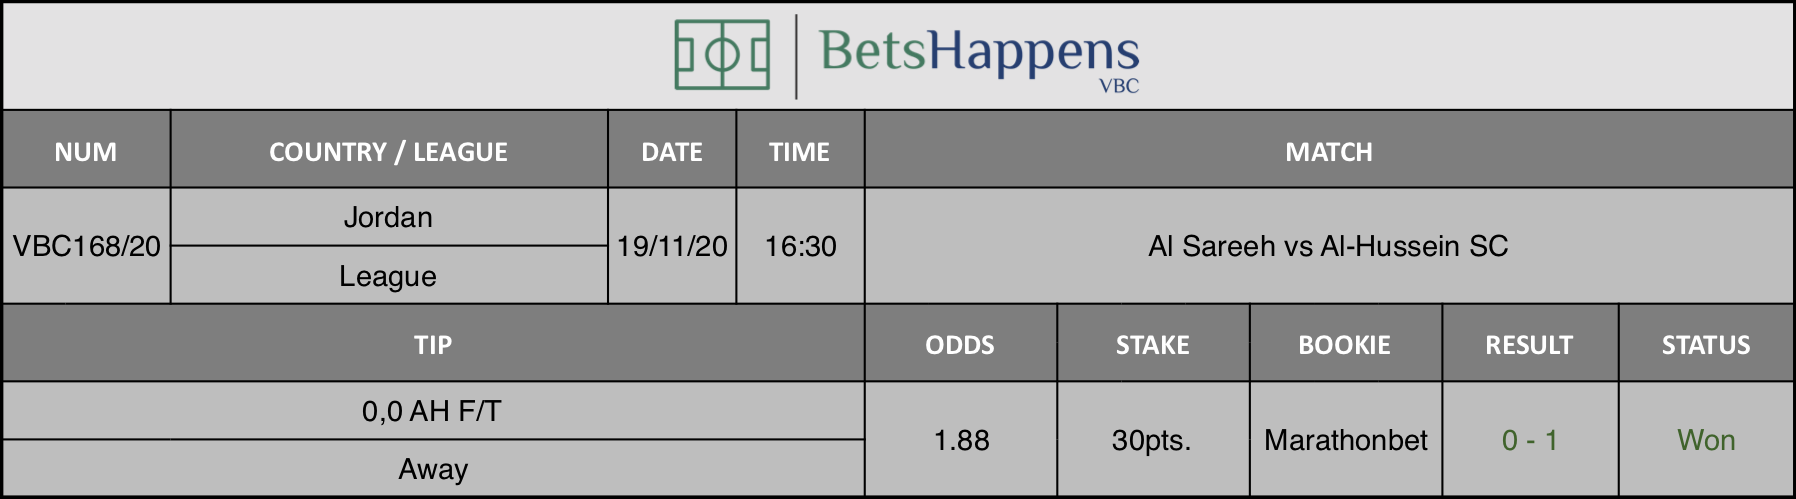 Results of our tip for the Al Sareeh vs Al-Hussein SC match where 0,0 AH F/T  Away is recommended.